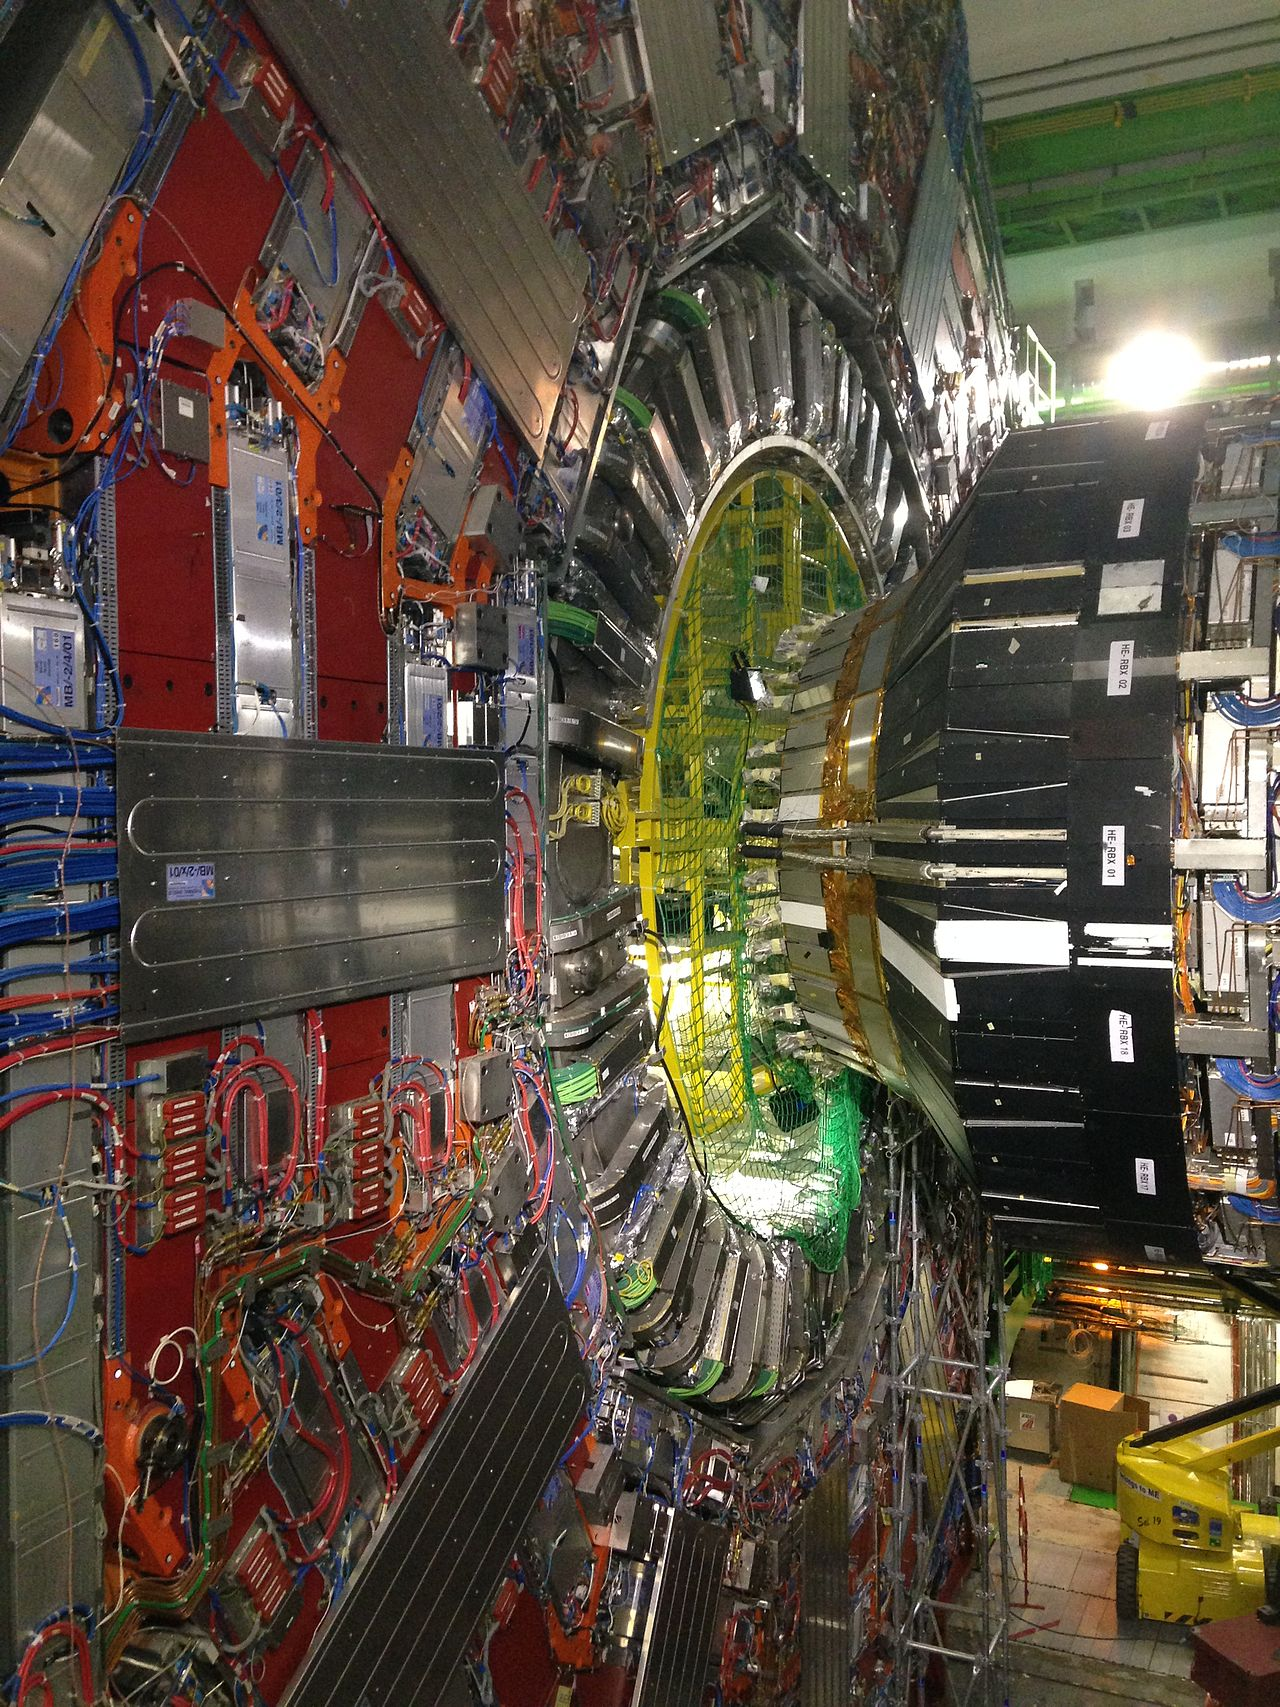 Detector at the Large Hadron Collider